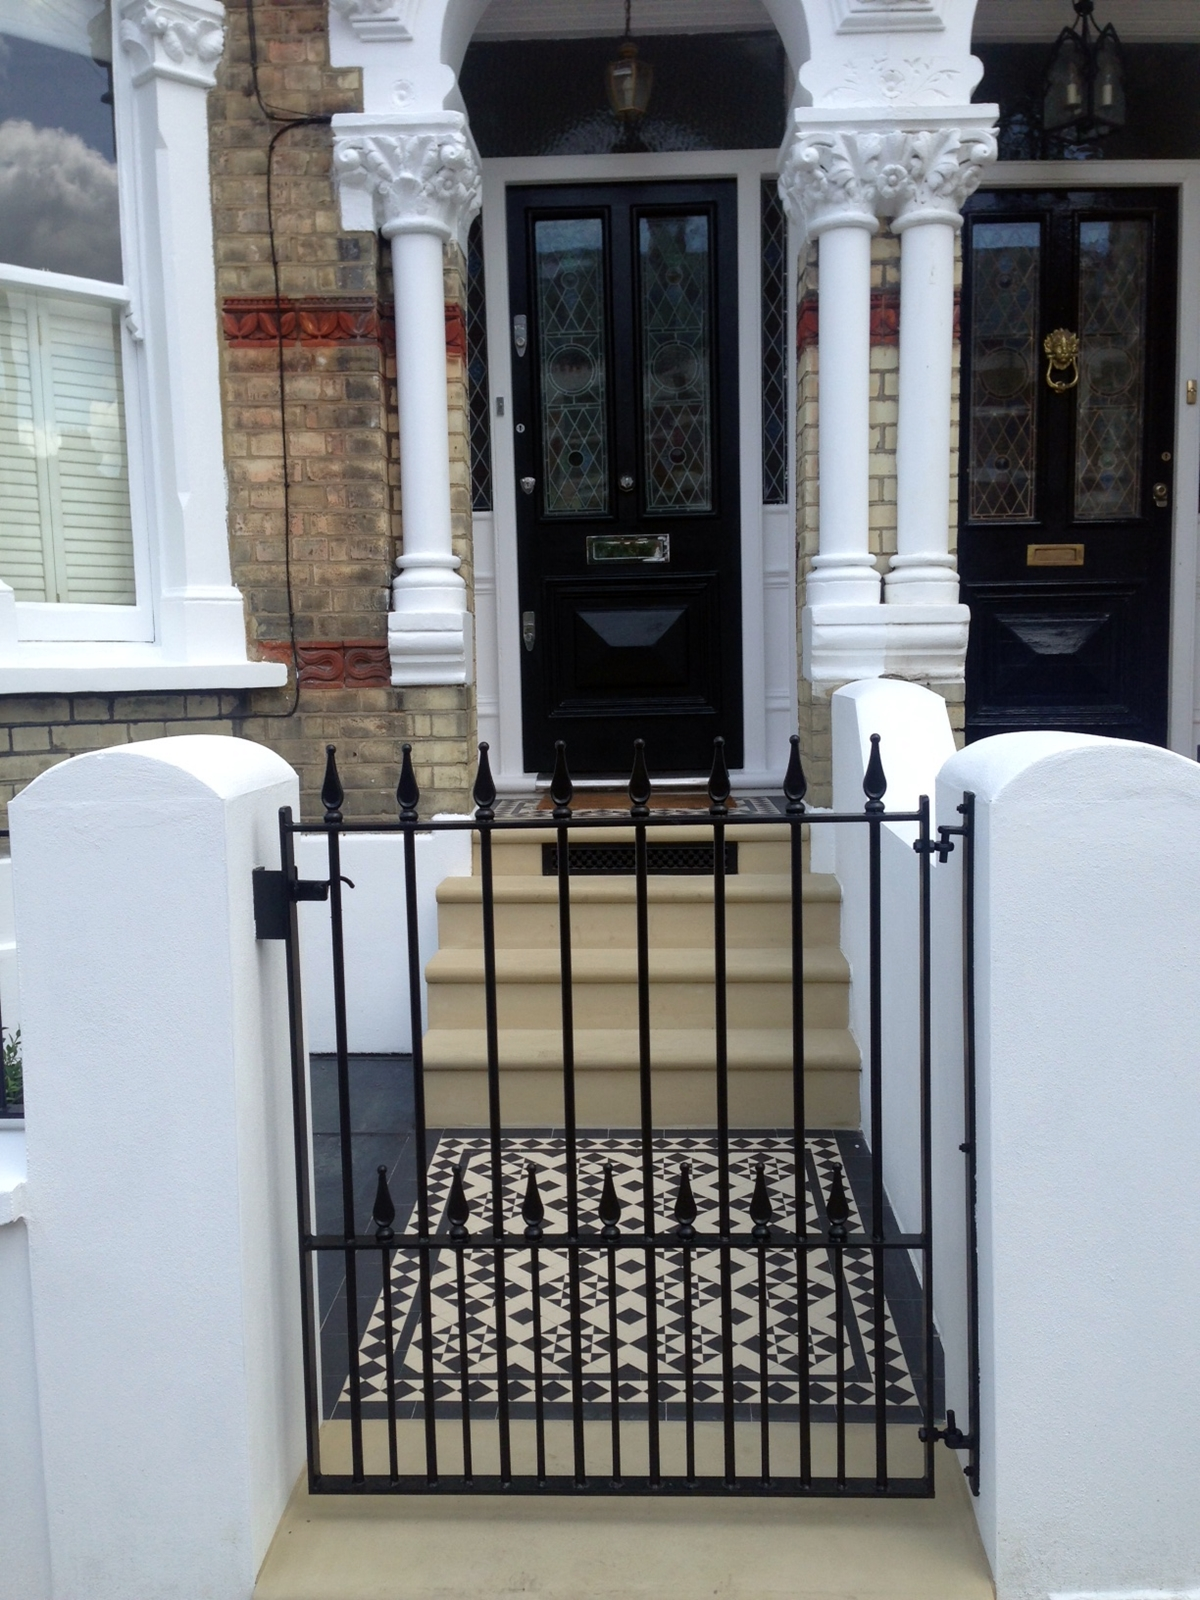 bull nose york stone steps daisy grate victorian mosaic tile path wrought iron rail and gate clapham london rendered painted garden wall (8)